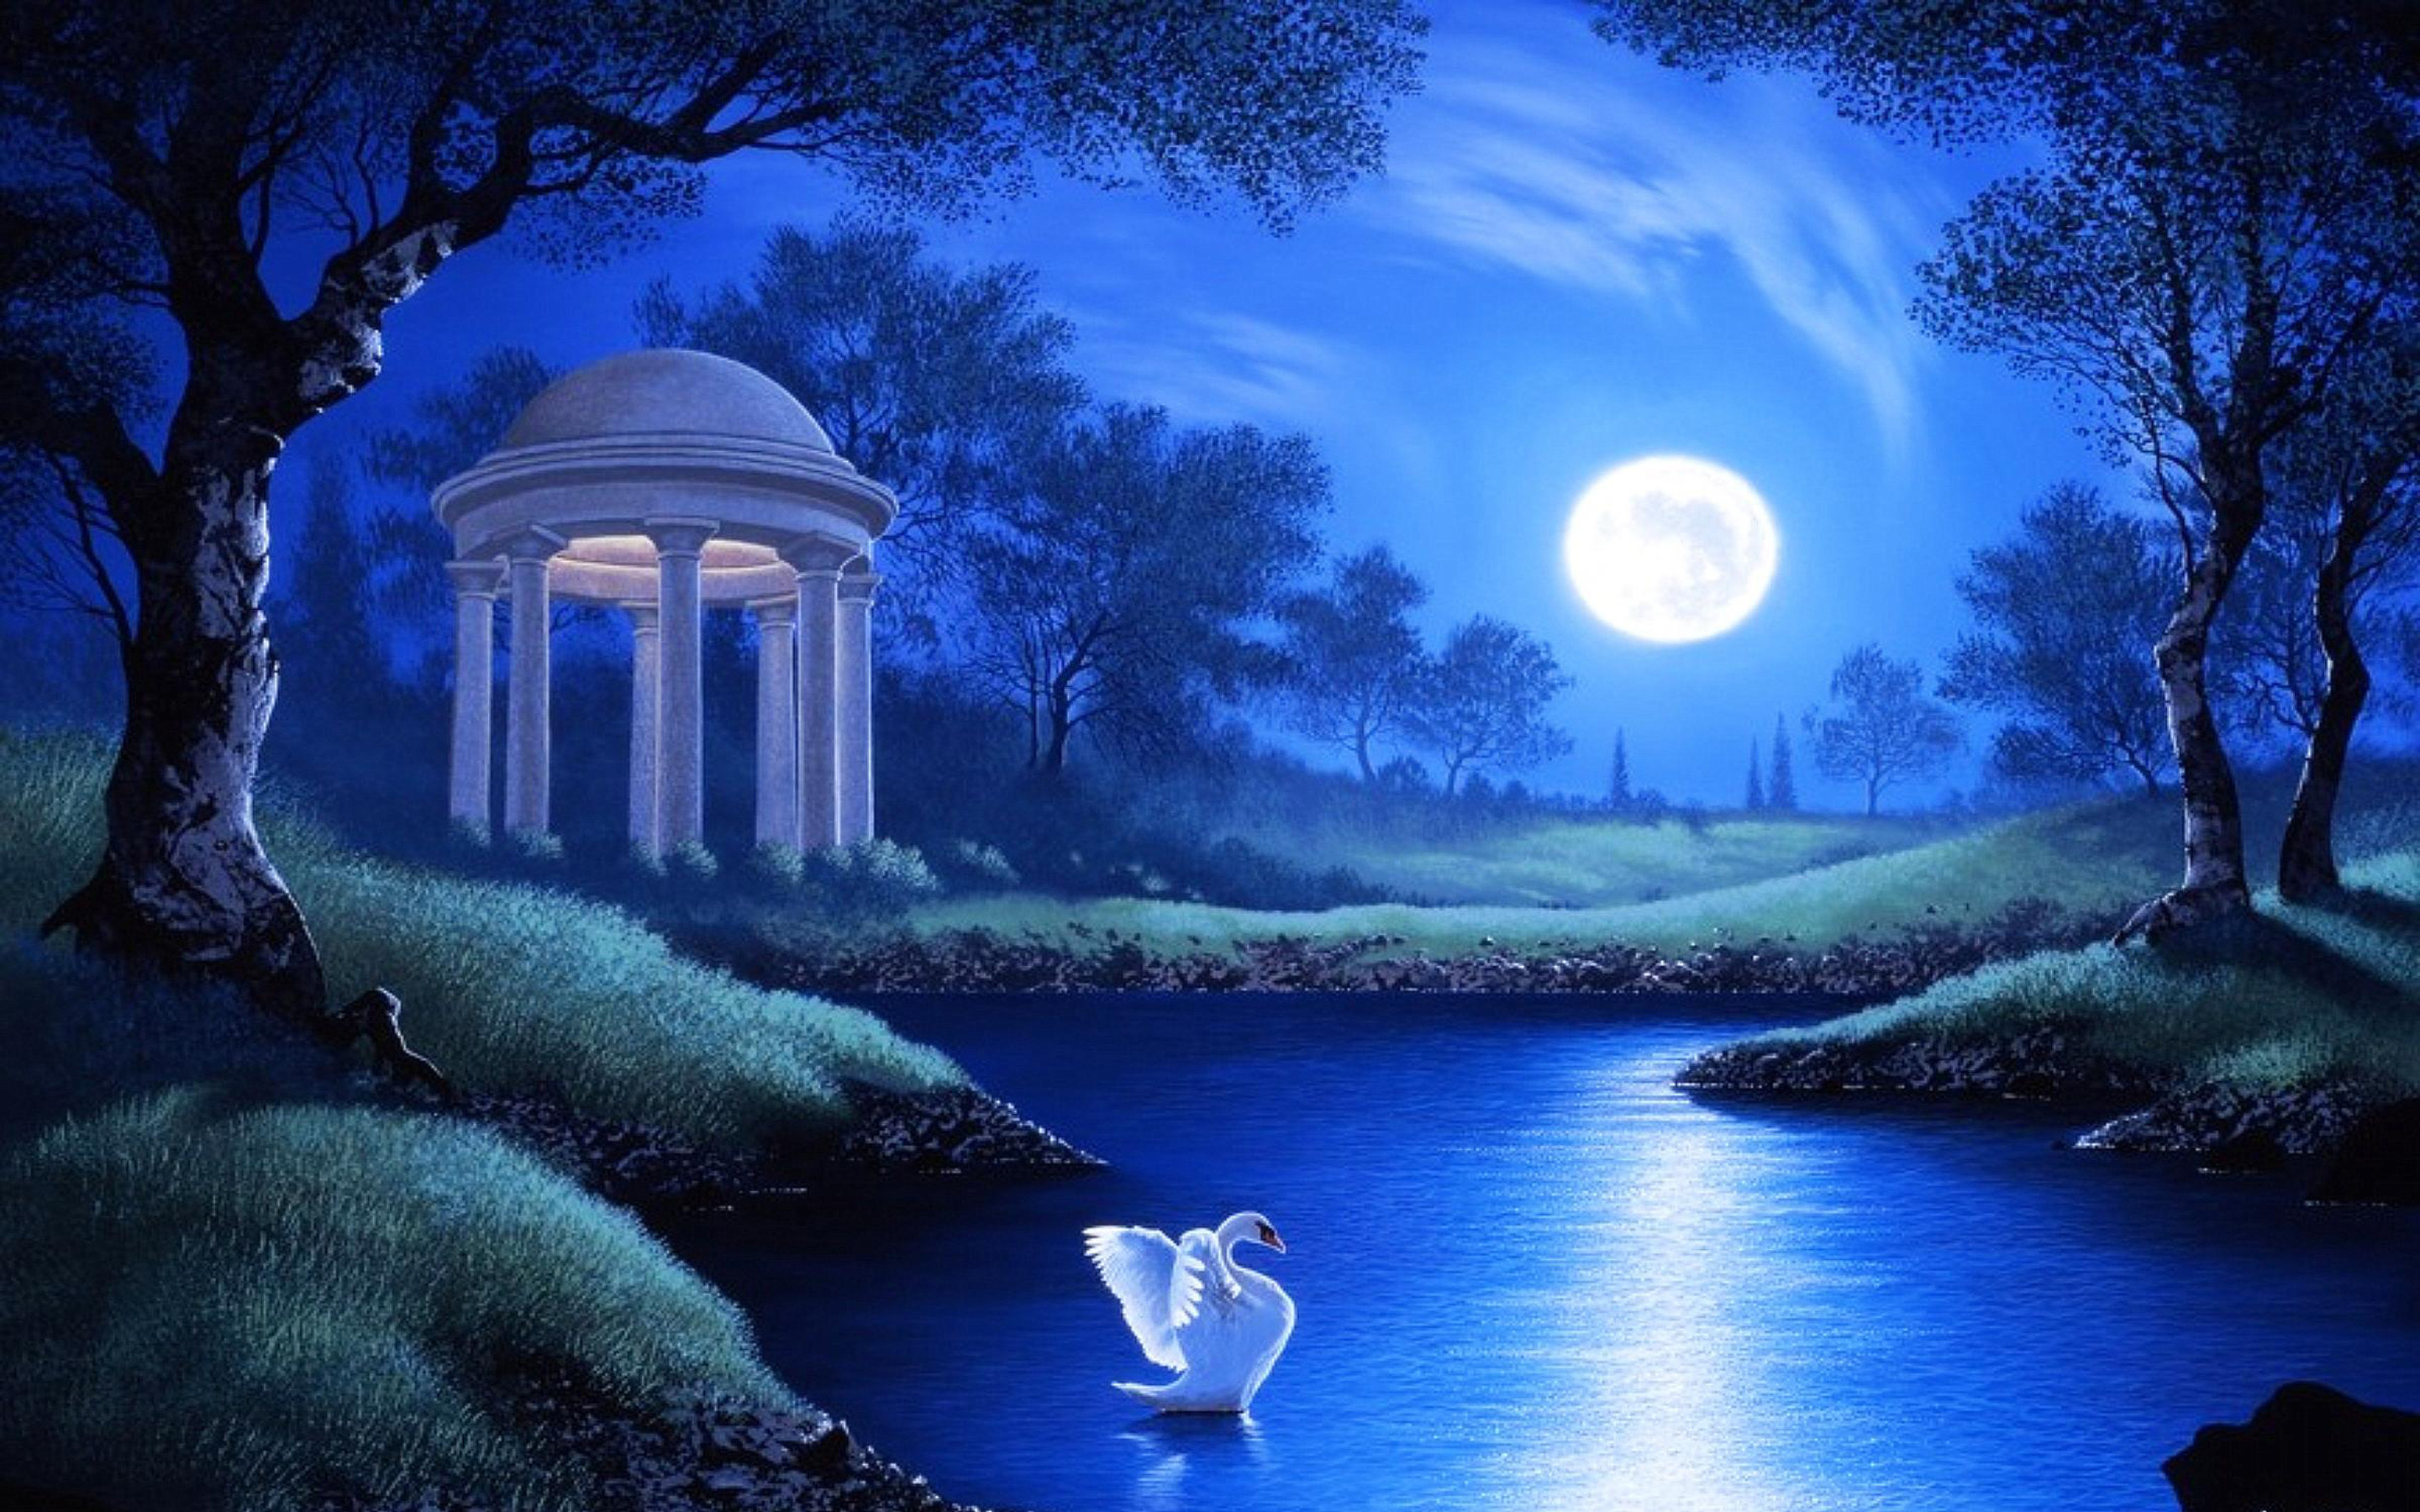 Big Size Wallpapers With Quotes Swan Lake Night Full Moon Trees Grass Hd Wallpaper